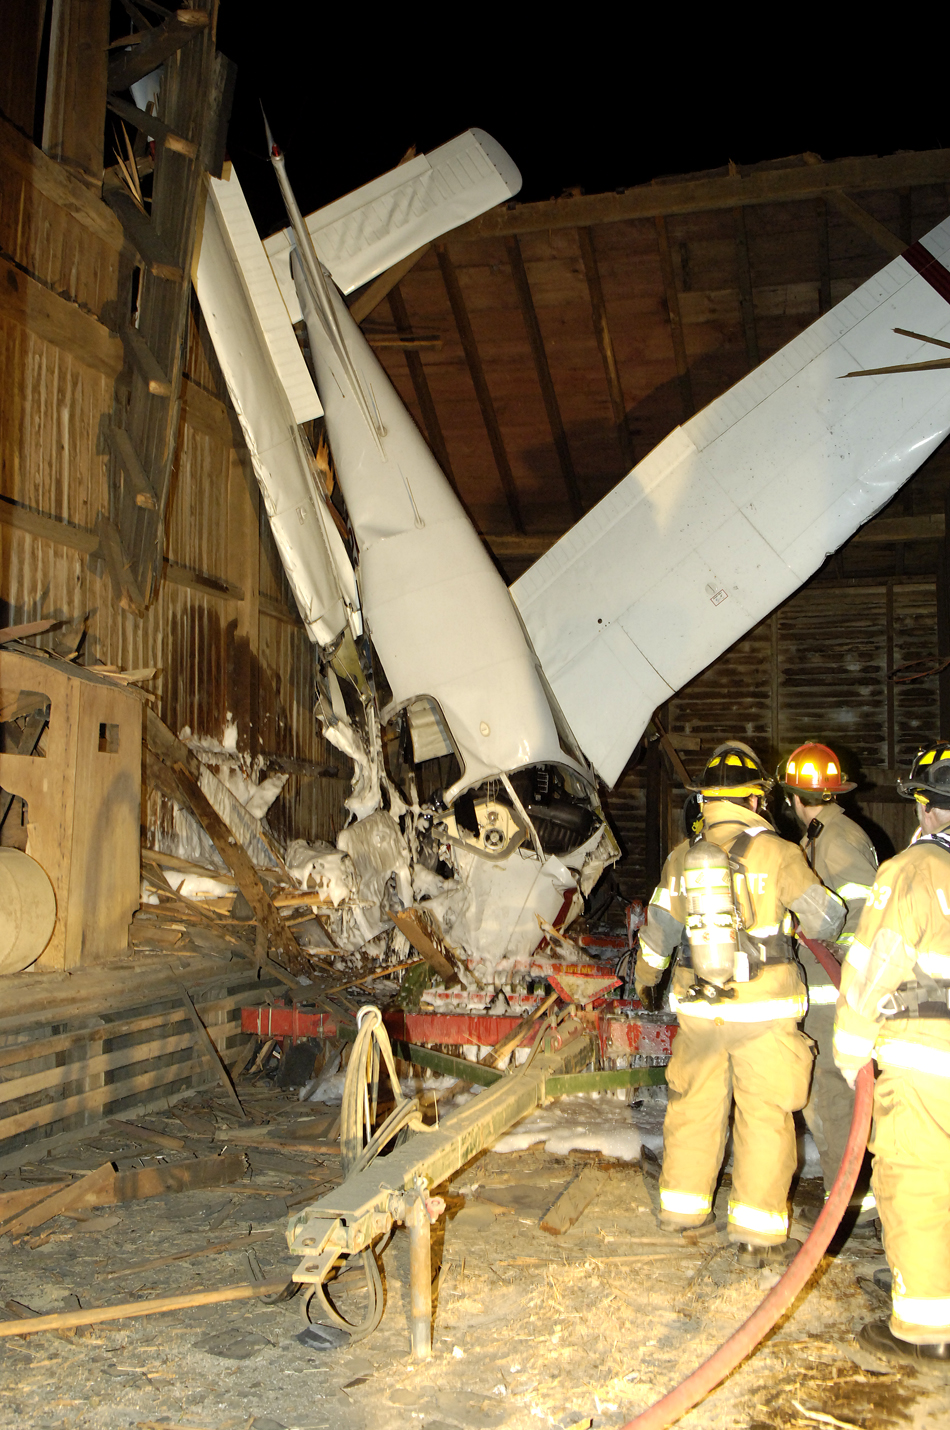 hight resolution of on saturday january 28 a piper warrior that witnesses said was wobbling and shaking crashed into a barn near lancaster pa injuring the